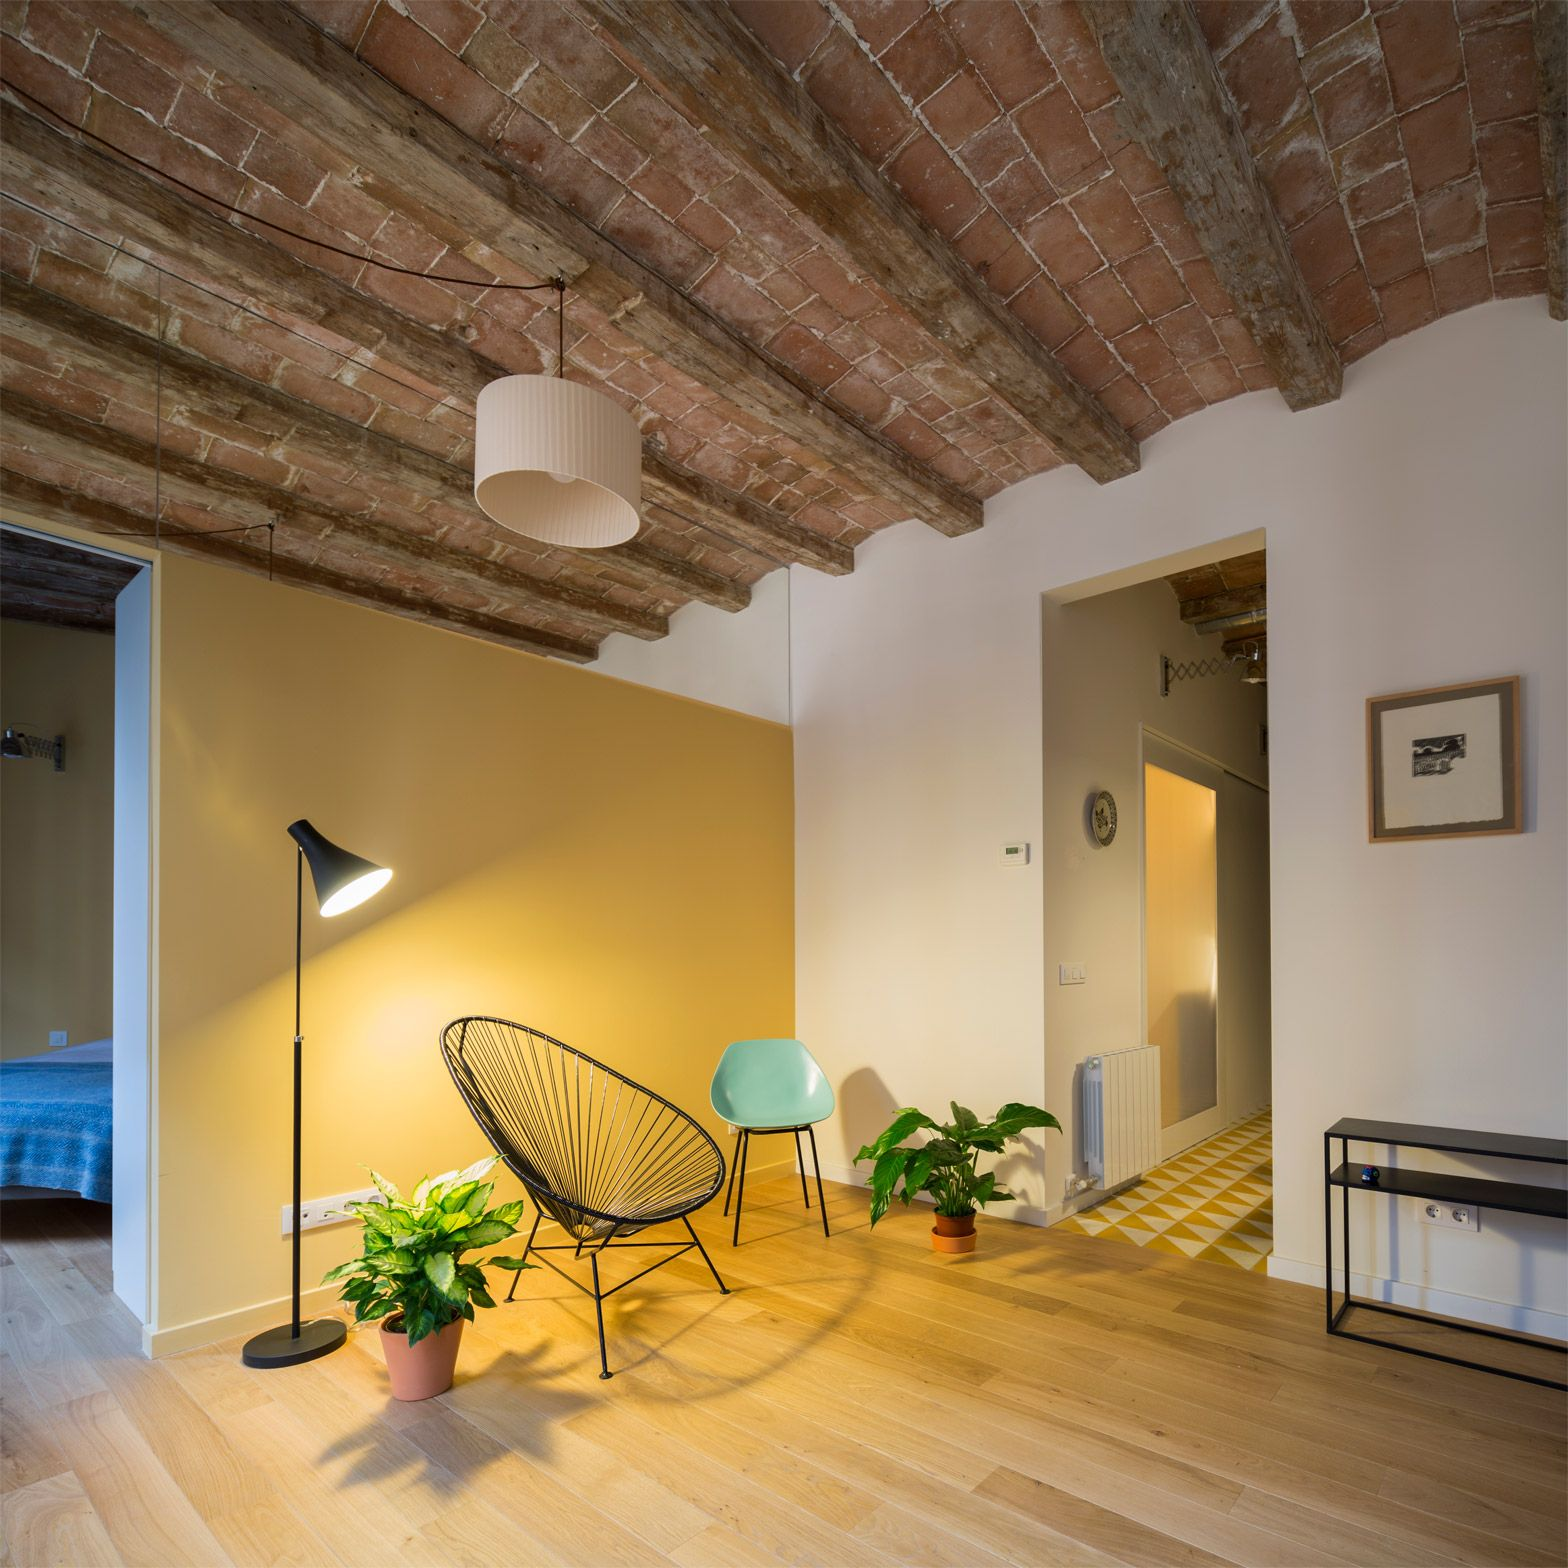 Local Studio Apartments: Barrel-vaulted Ceilings And Exposed Brick Walls Evoke The